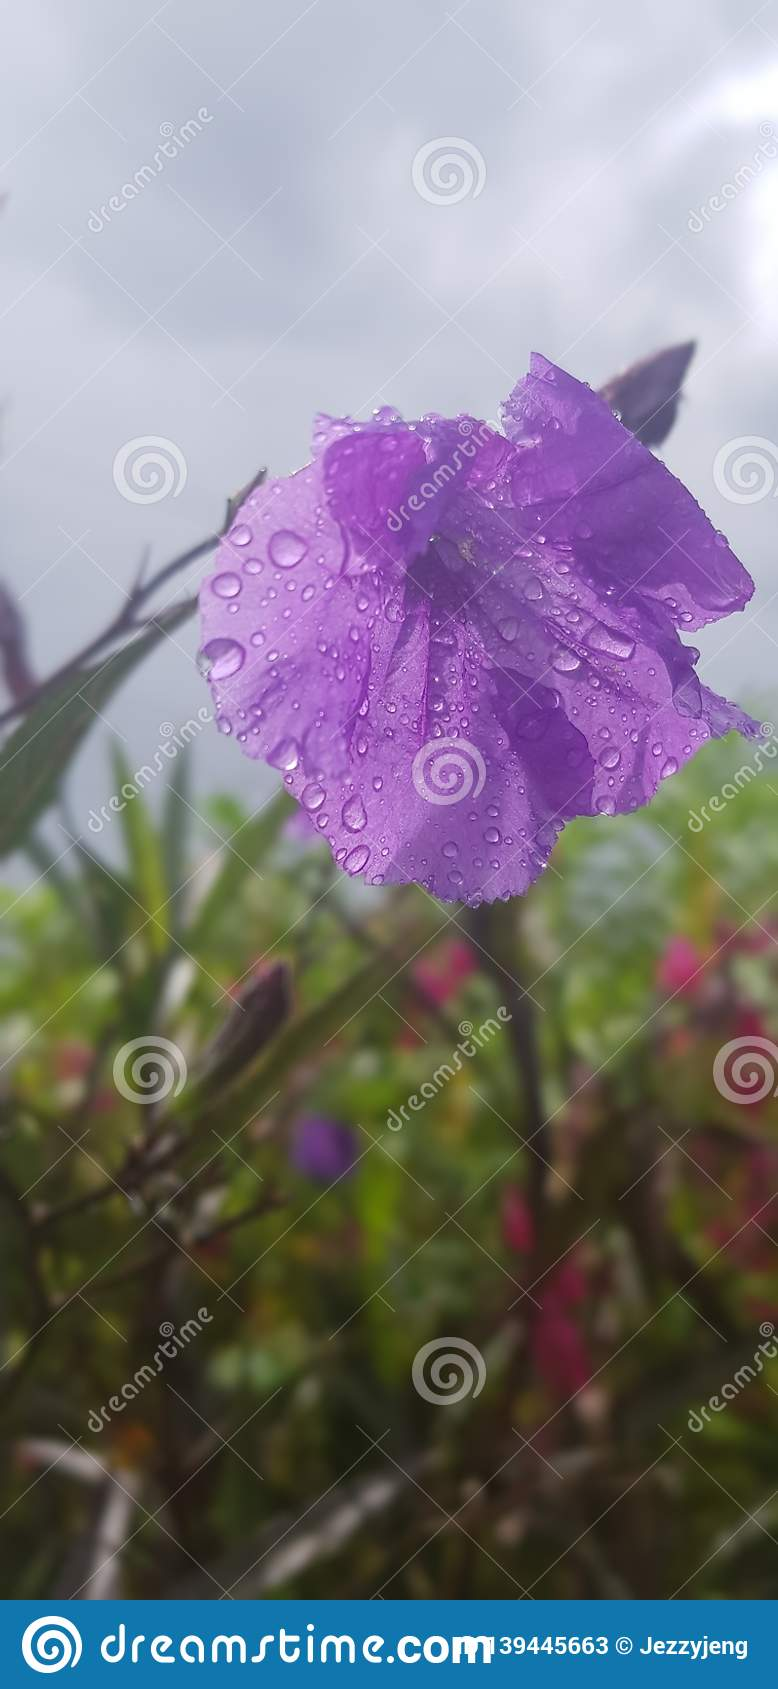 Fowler Plants Dew By Samsung Camera Stock Image - Image of